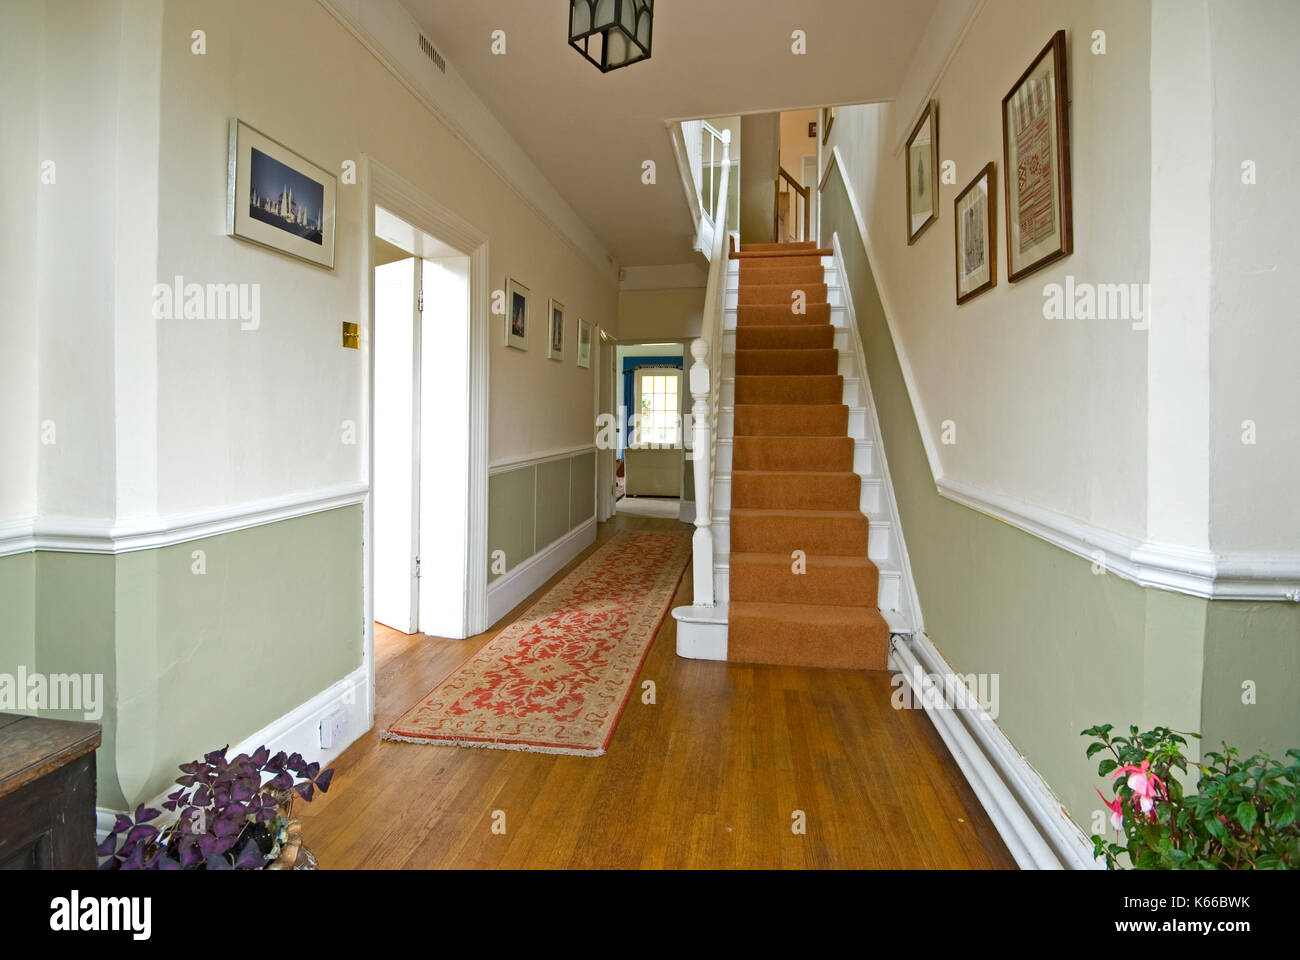 Lovely Entrance Hall And Staircase In Period Home   Stock Image